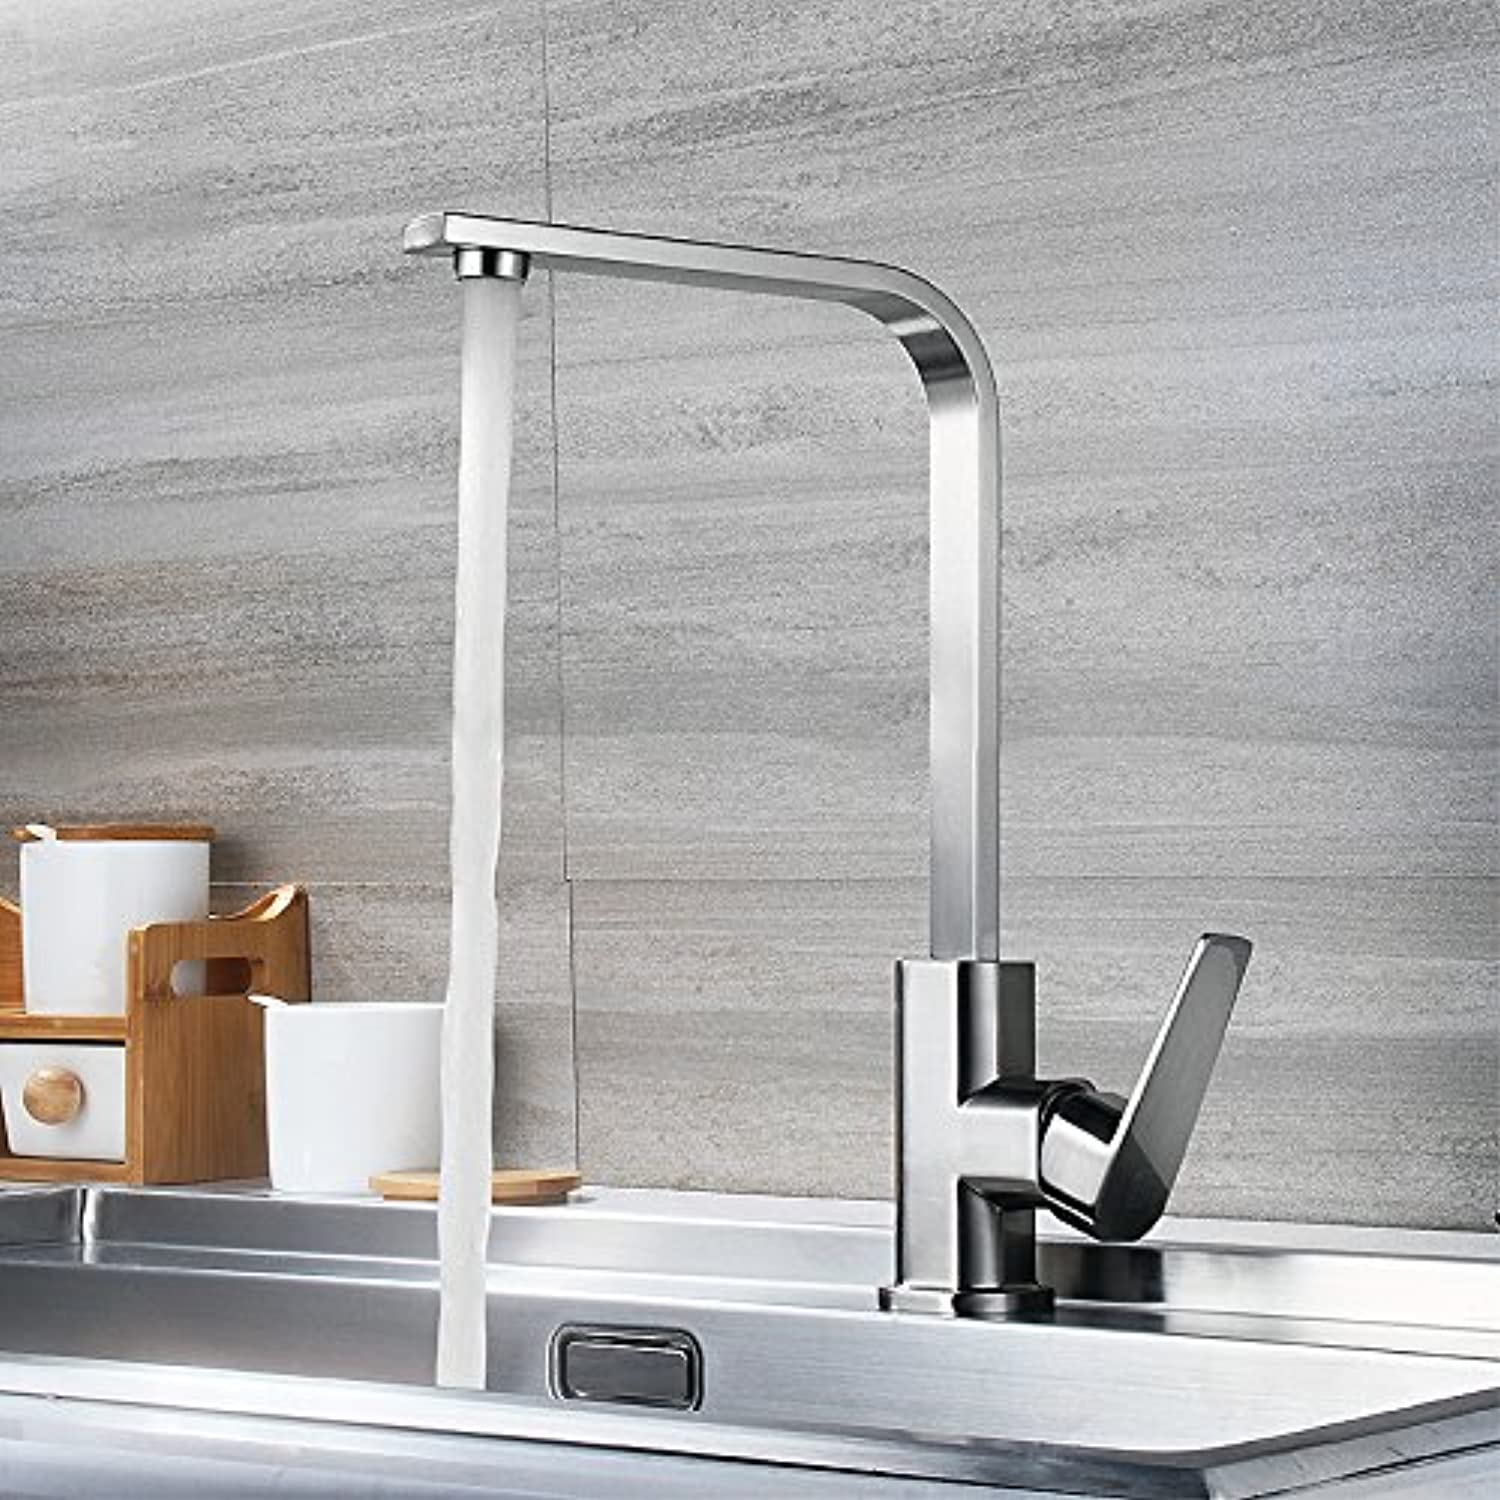 Decorry All Copper Kitchen Sink Faucet 304 Stainless Steel Square Tube Cold Mixed Vegetables Basin Faucet Single Cold Drawing Wash Basin Faucet Ceramic Valve Core redatable, B Whole Copper Wire Drawing Section